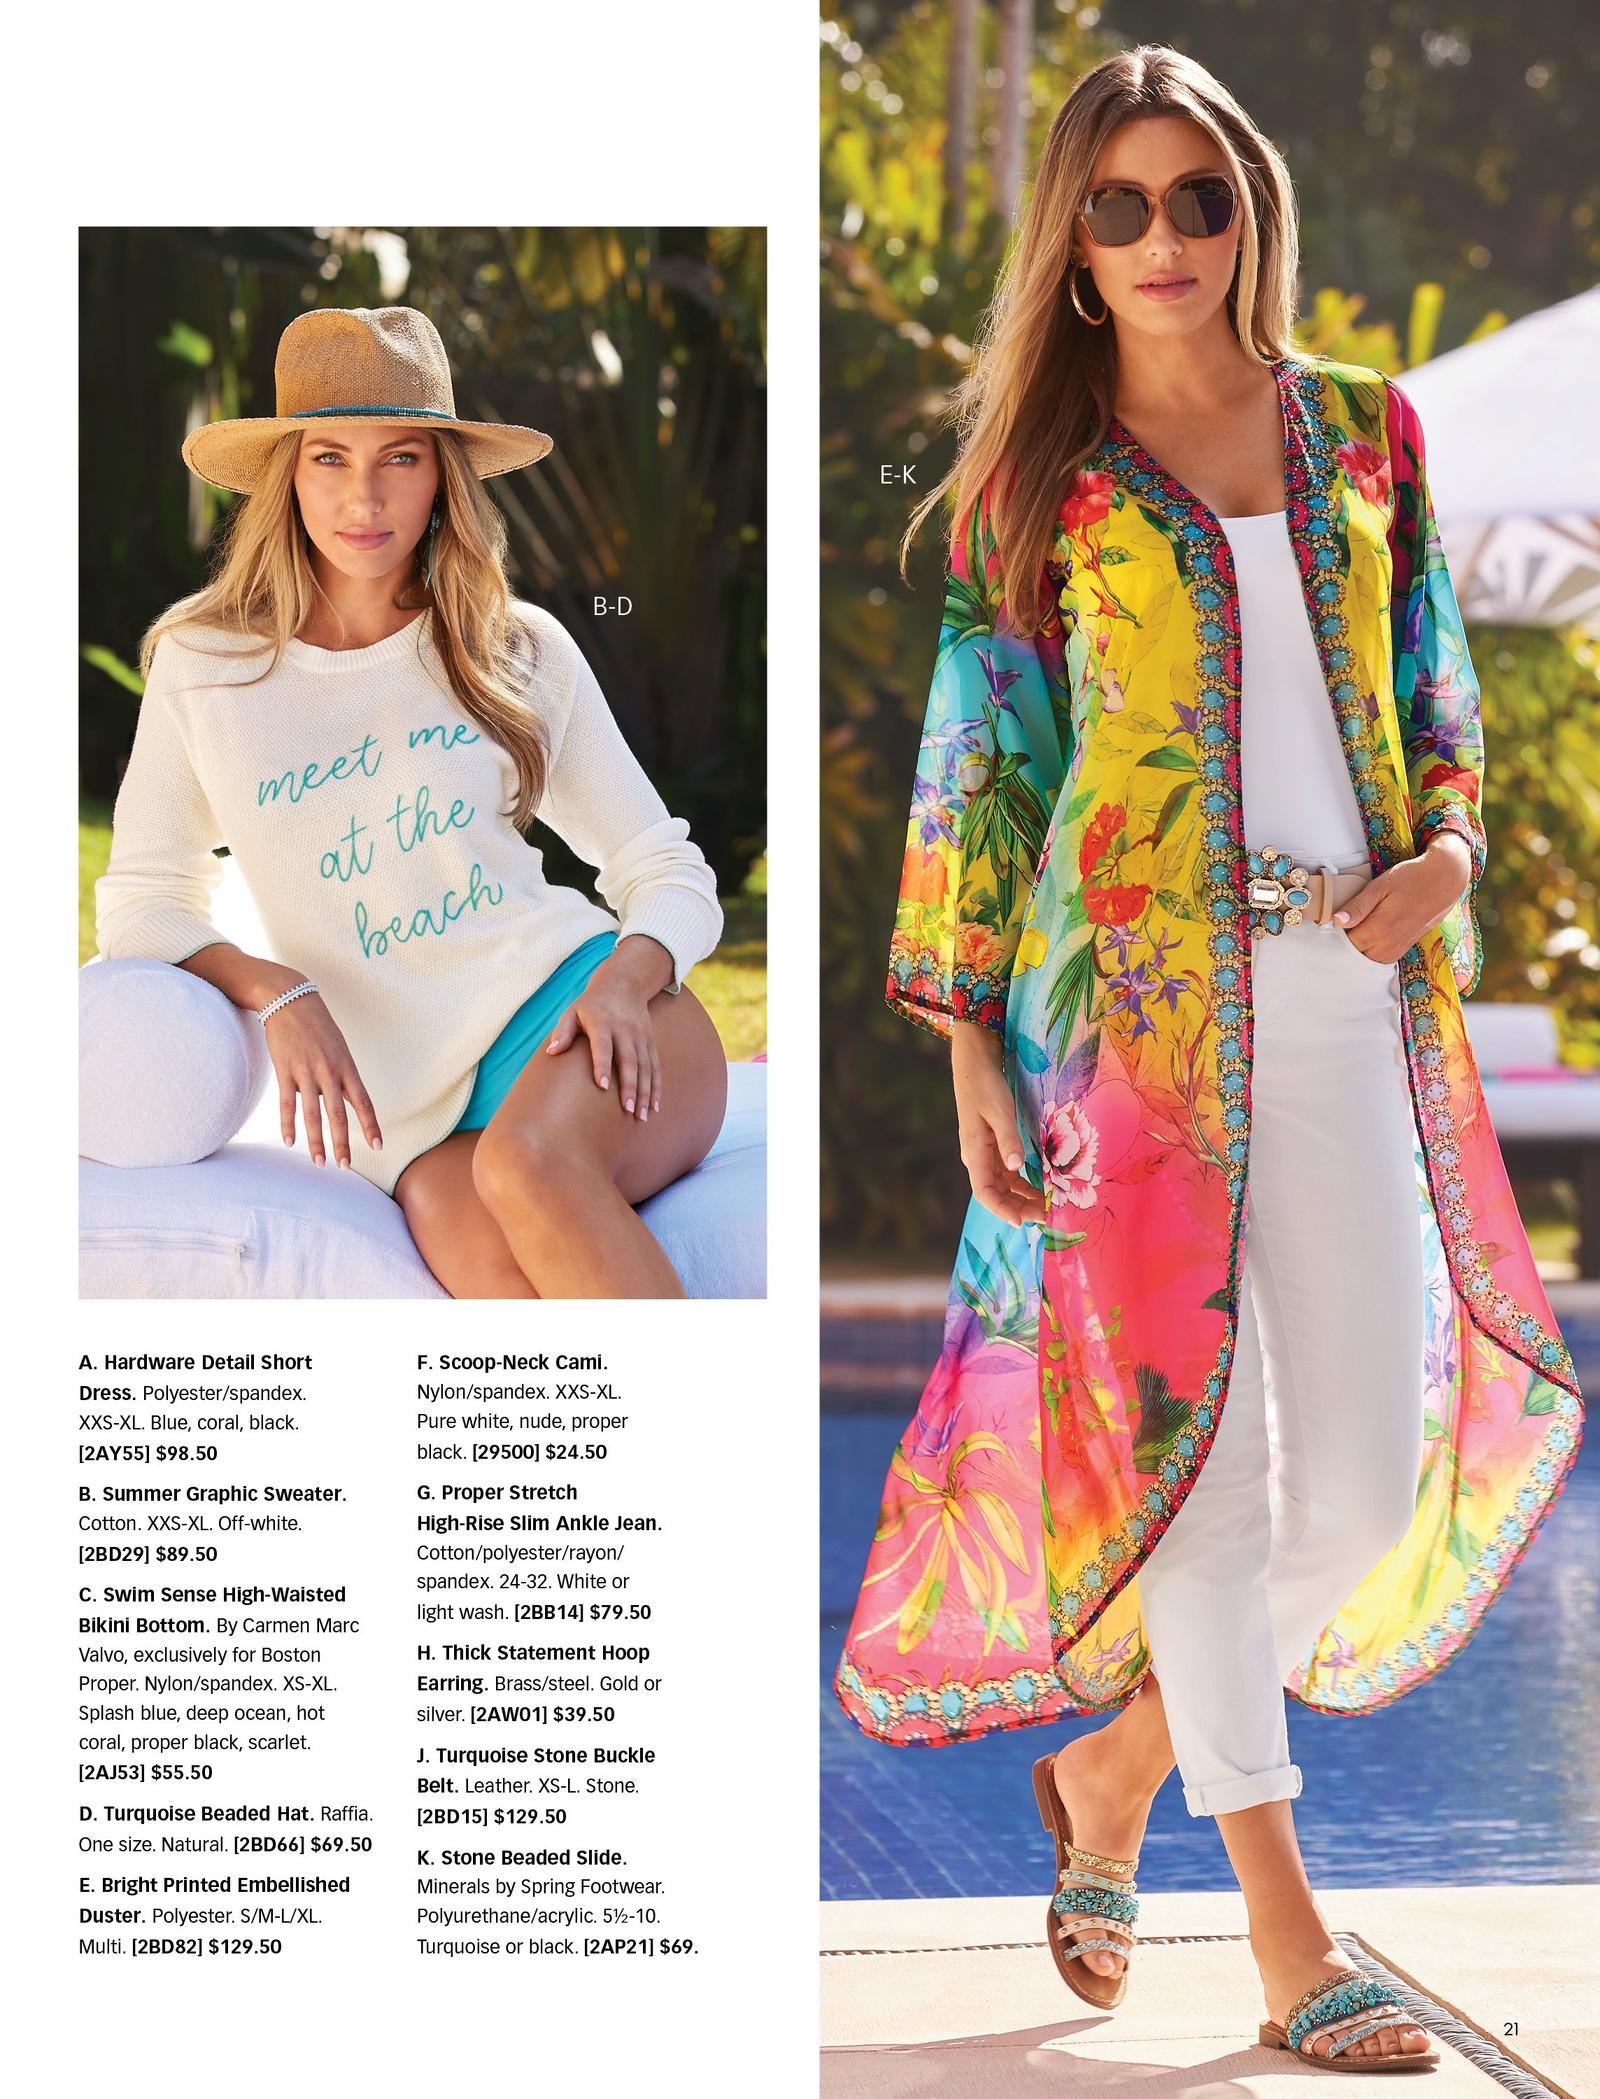 left model wearing a white graphic sweater, blue bikini bottoms, and straw hat. right model wearing a floral printed embellished duster, white tank top, blue stone embellished belt, white jeans, blue stone embellished slide sandals, gold hoop earrings, and sunglasses.